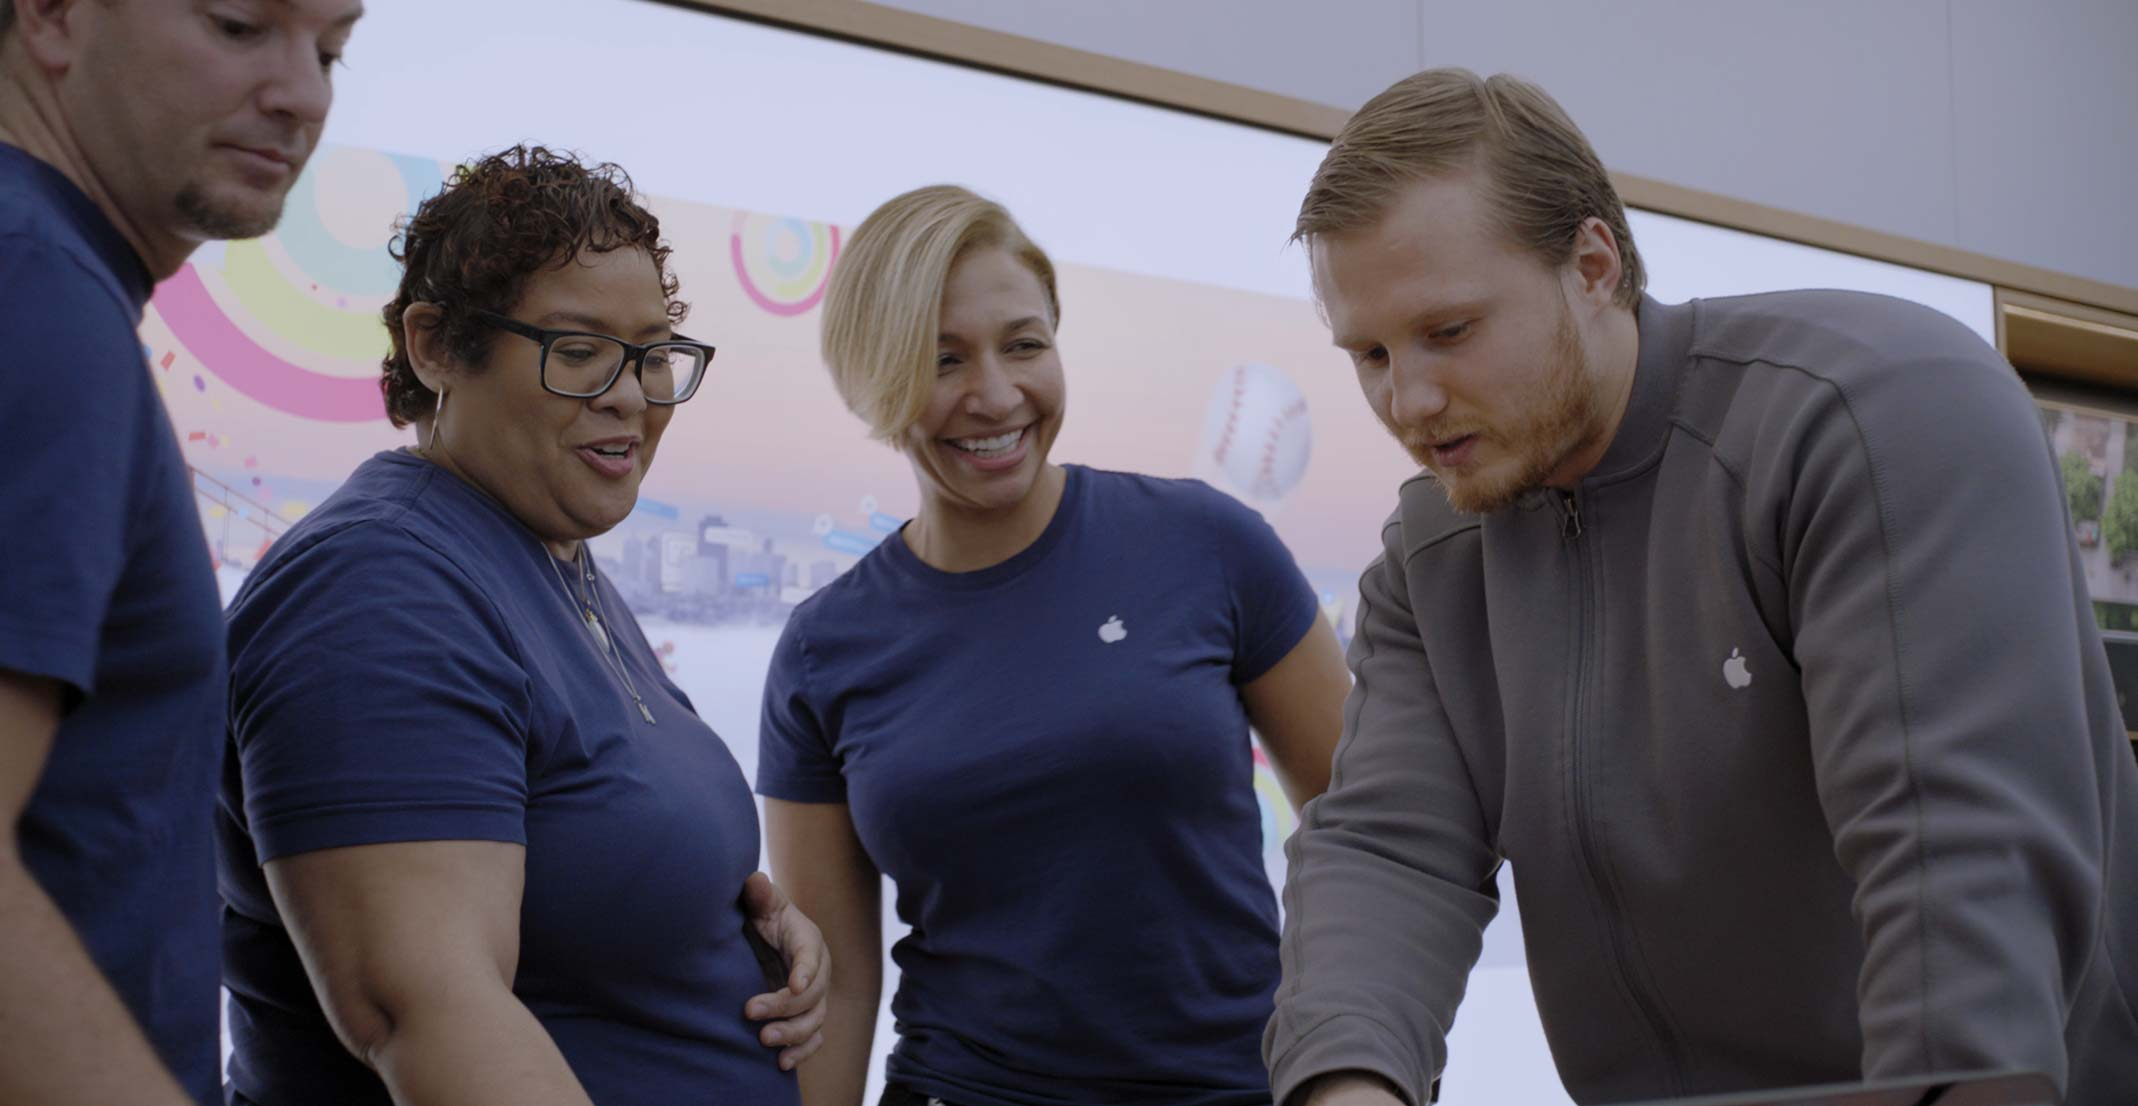 Consuela, a Store Leader at Apple Union Square, chats with team members at a store.